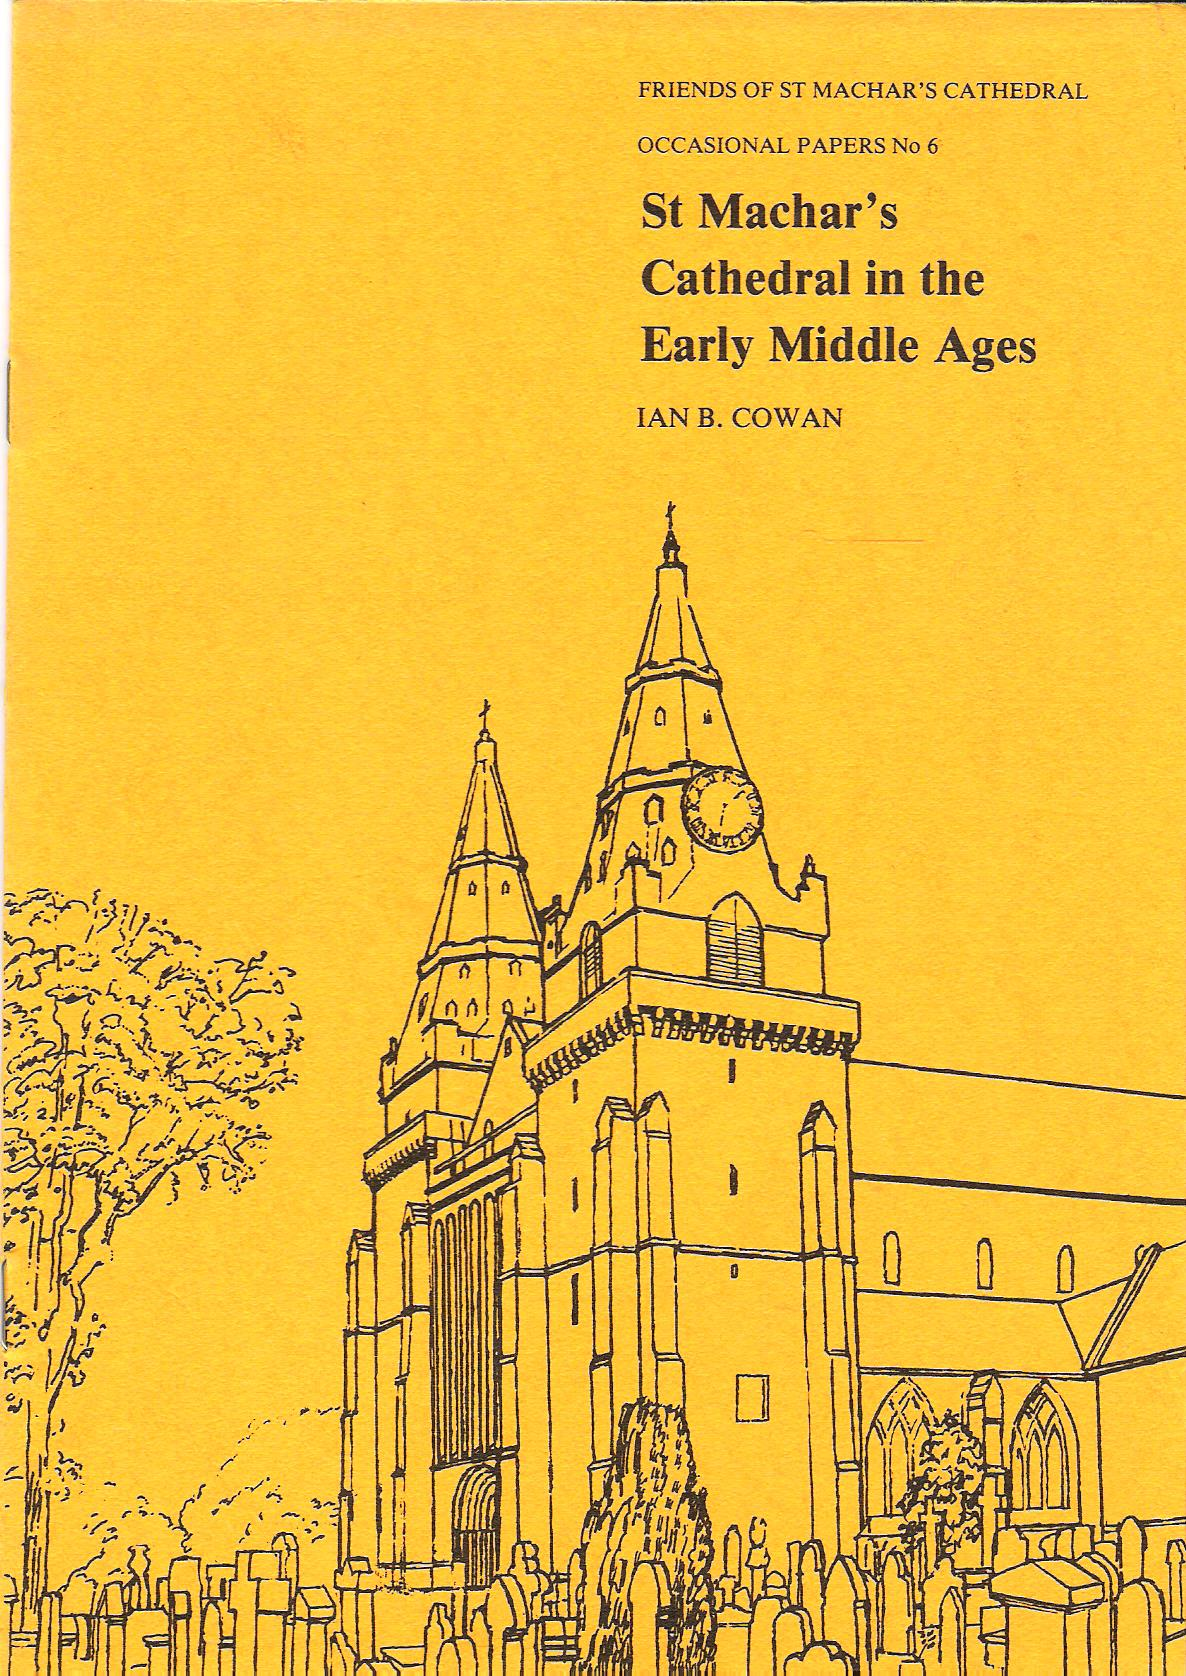 Image for St Machar's Cathedral in the Early Middle Ages: Occasional Papers No 6.